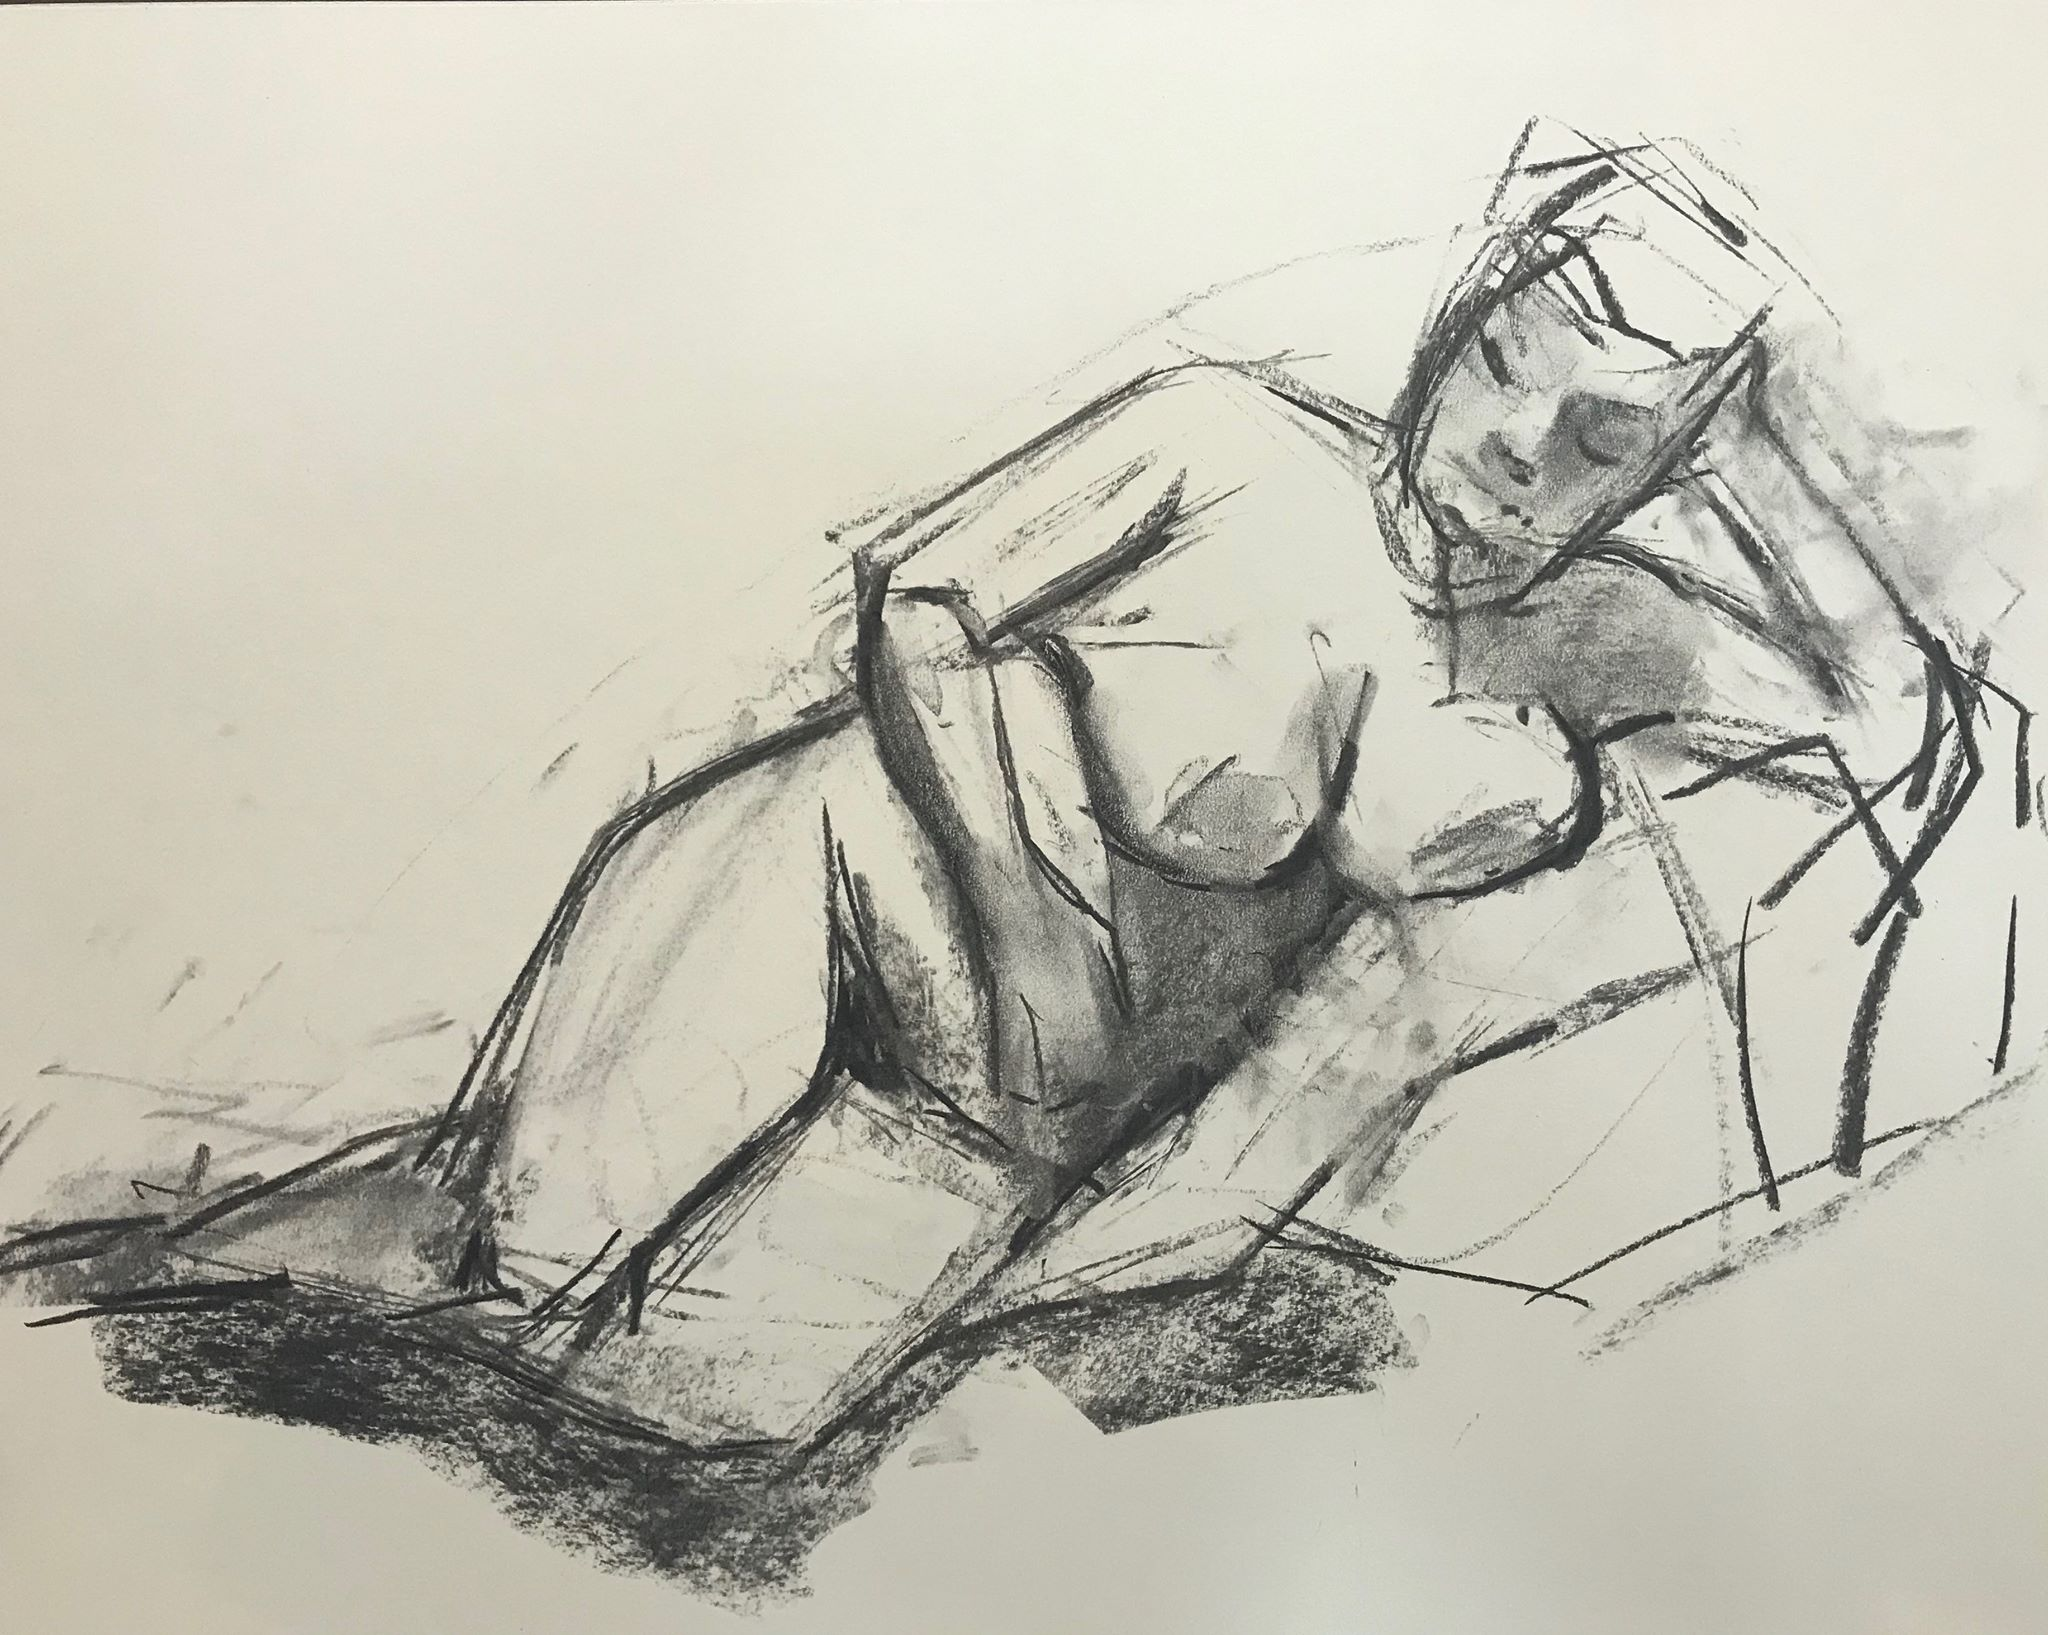 Figure Lying on her Side, charcoal on paper, 18x24 inches (my drawing)